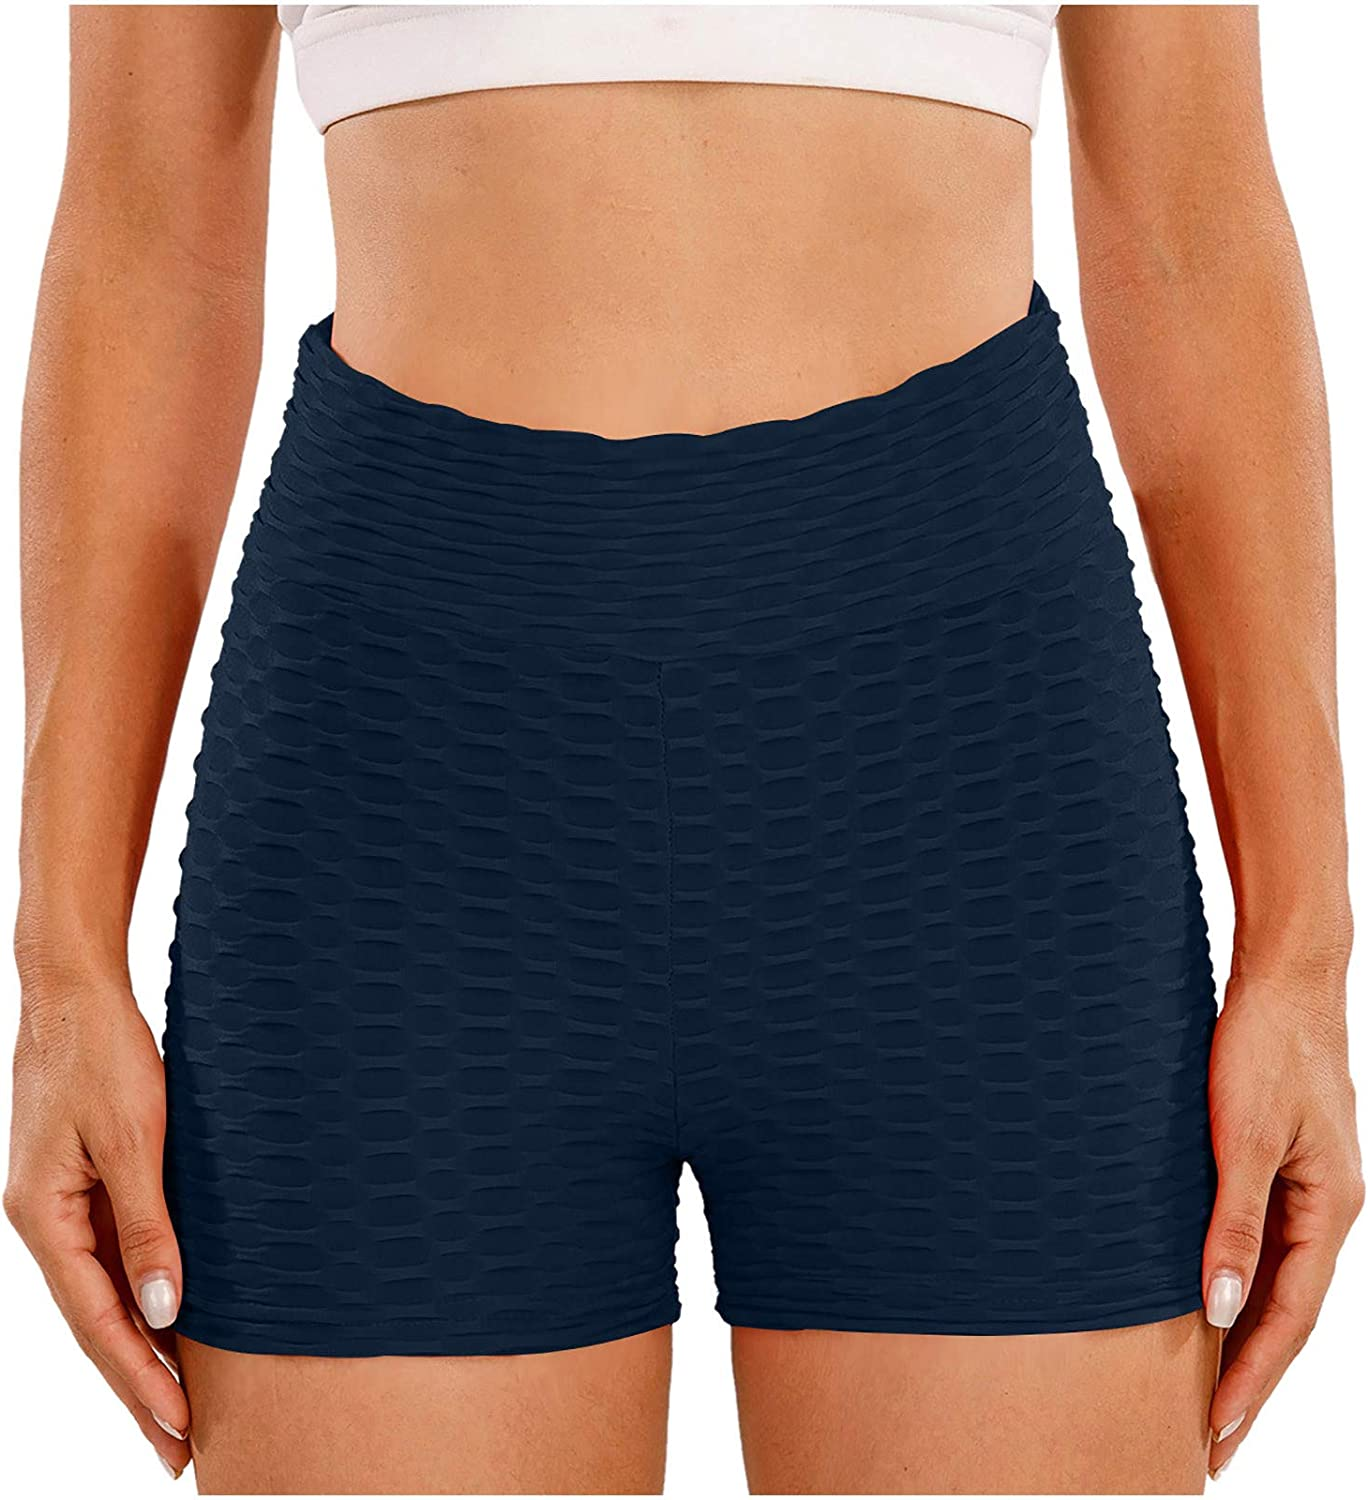 Gwewei4df 2PC High Waist Ranking TOP15 Yoga Shorts Super sale F Pants Exercise Multicolor